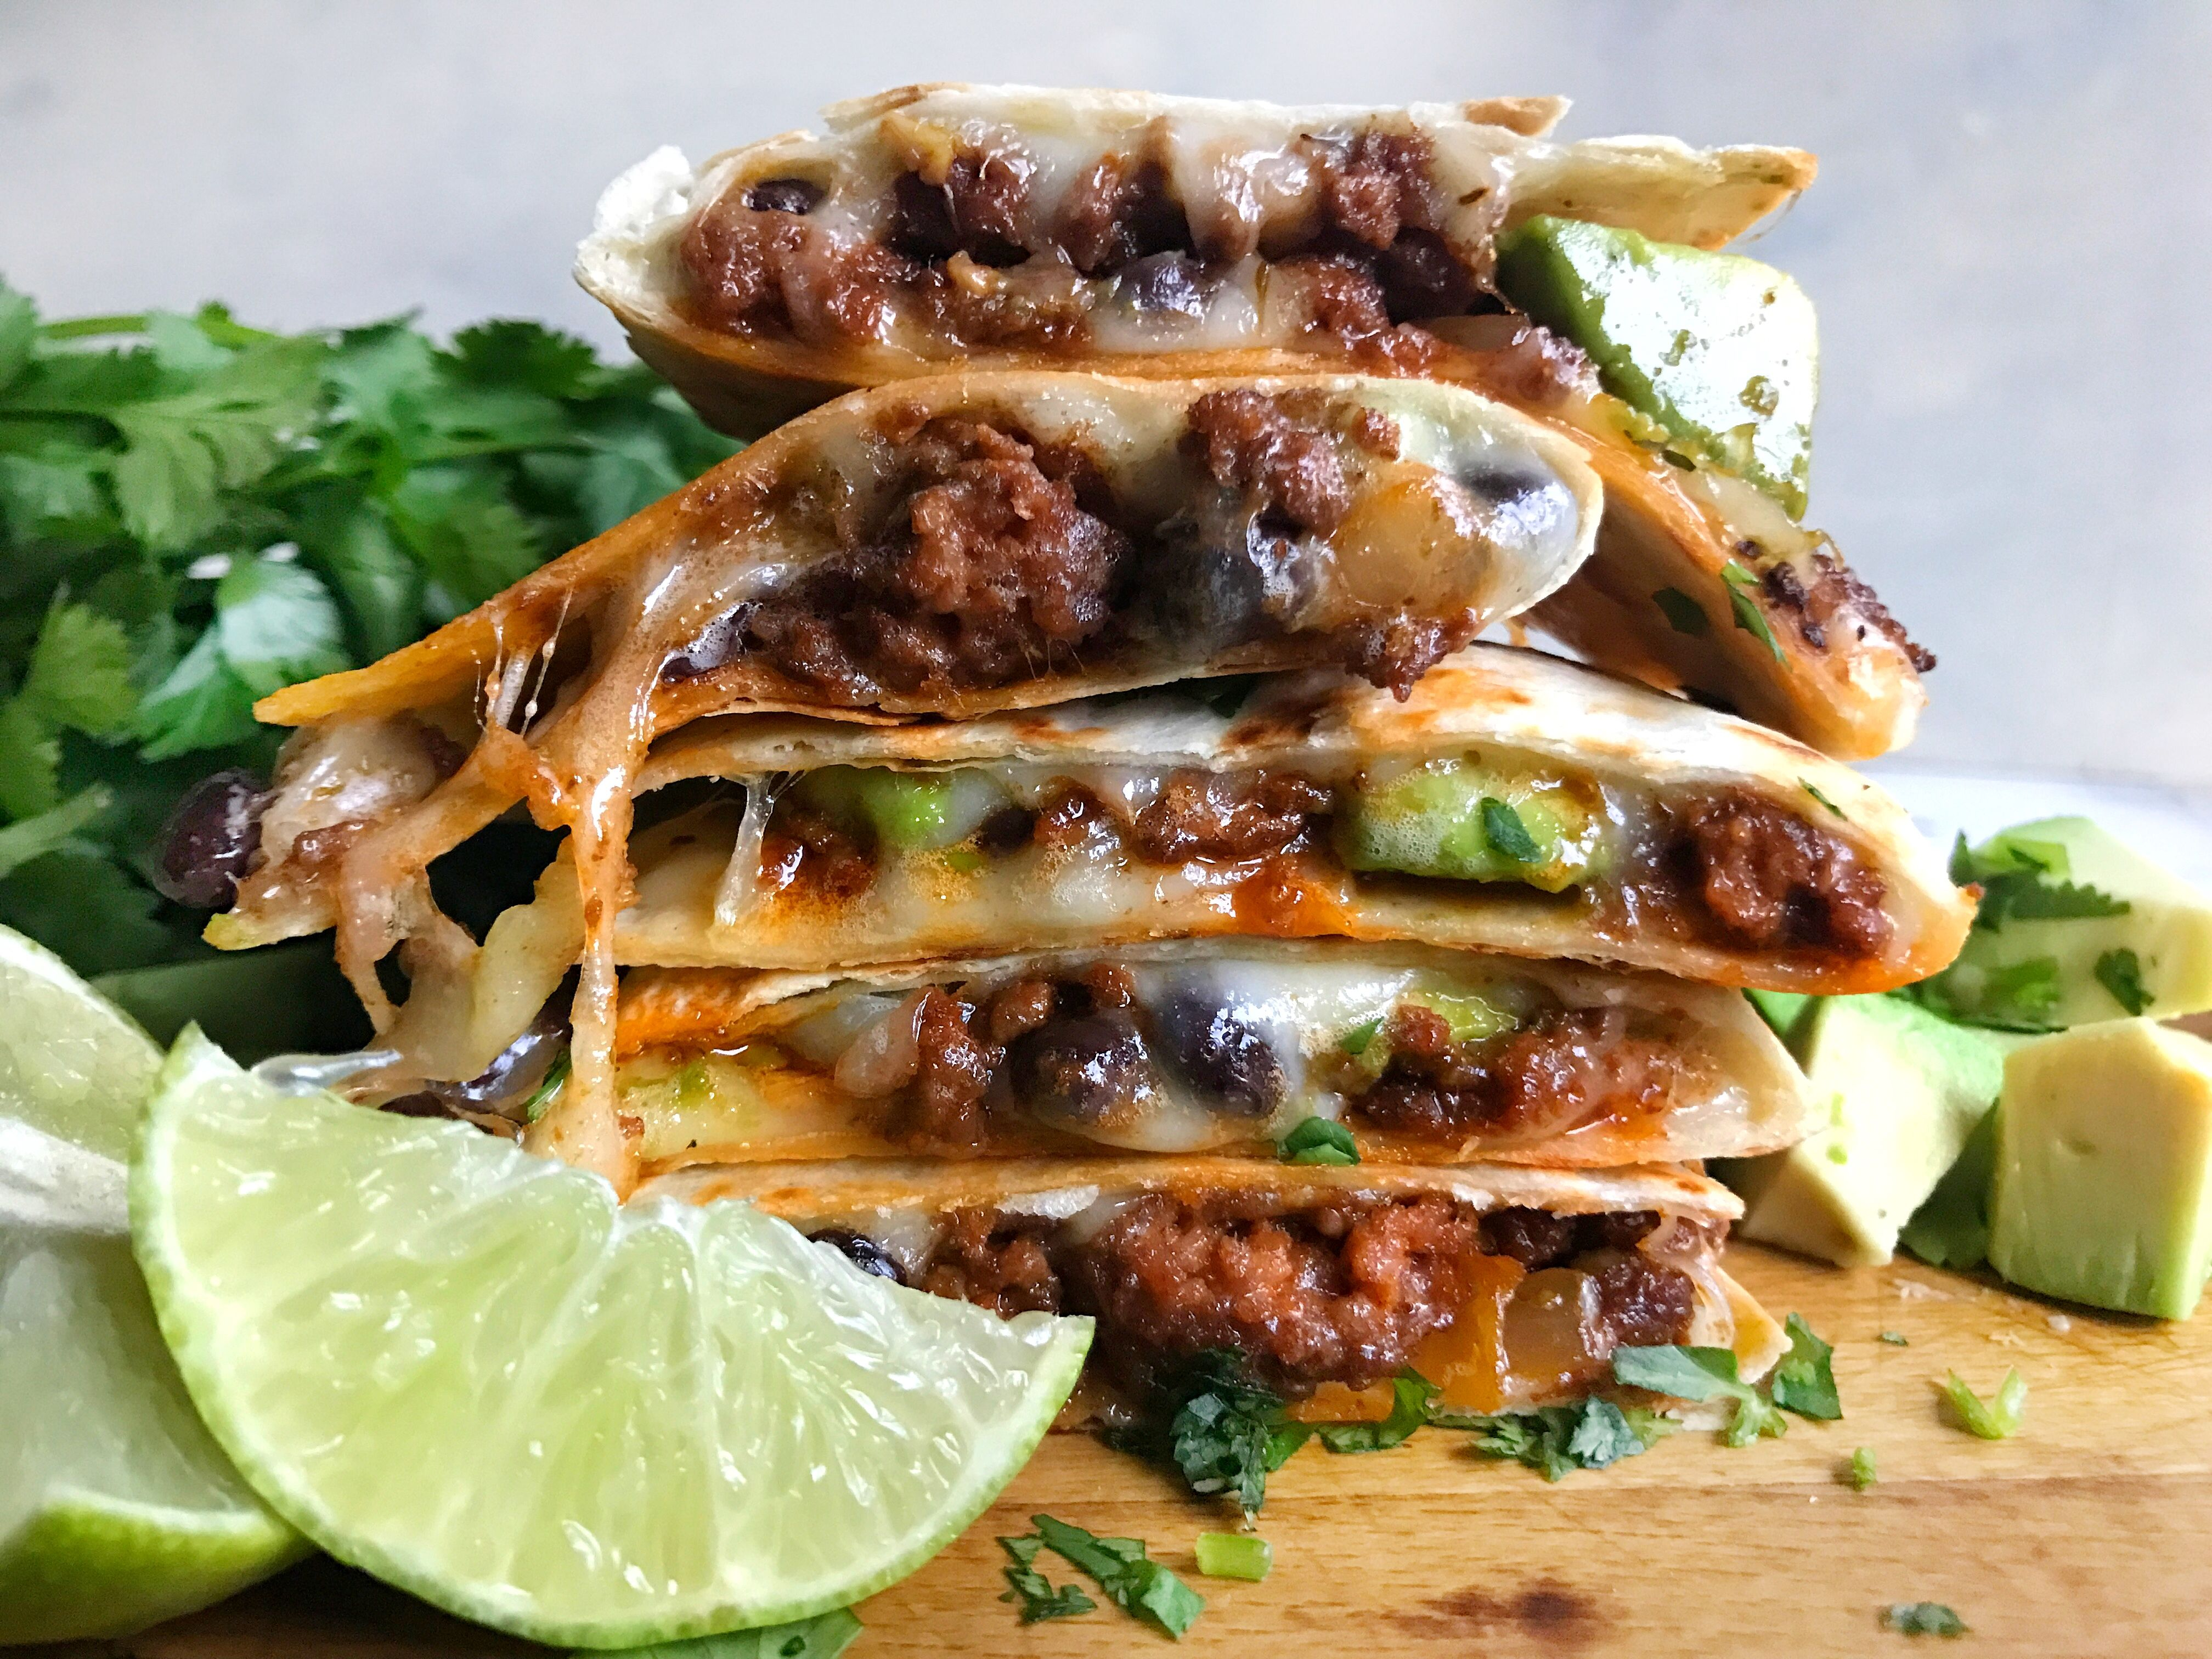 Best Cheesy Beef Quesadillas Recipe How To Make Cheesy Beef Quesadillas Delish Com